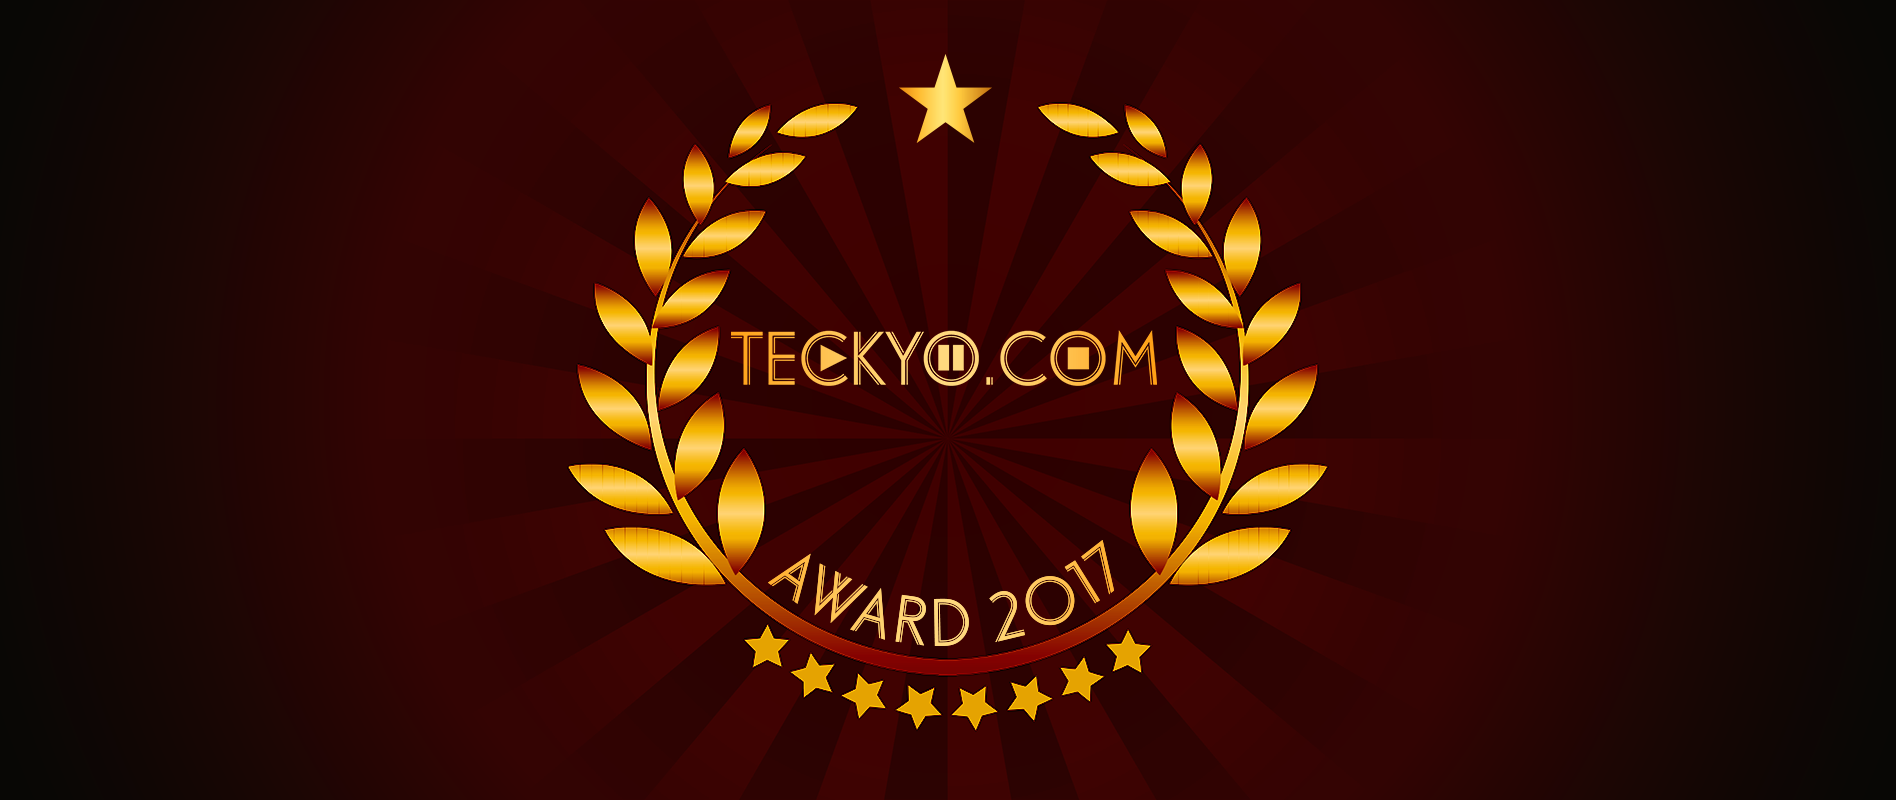 Teckyo Awards 2017